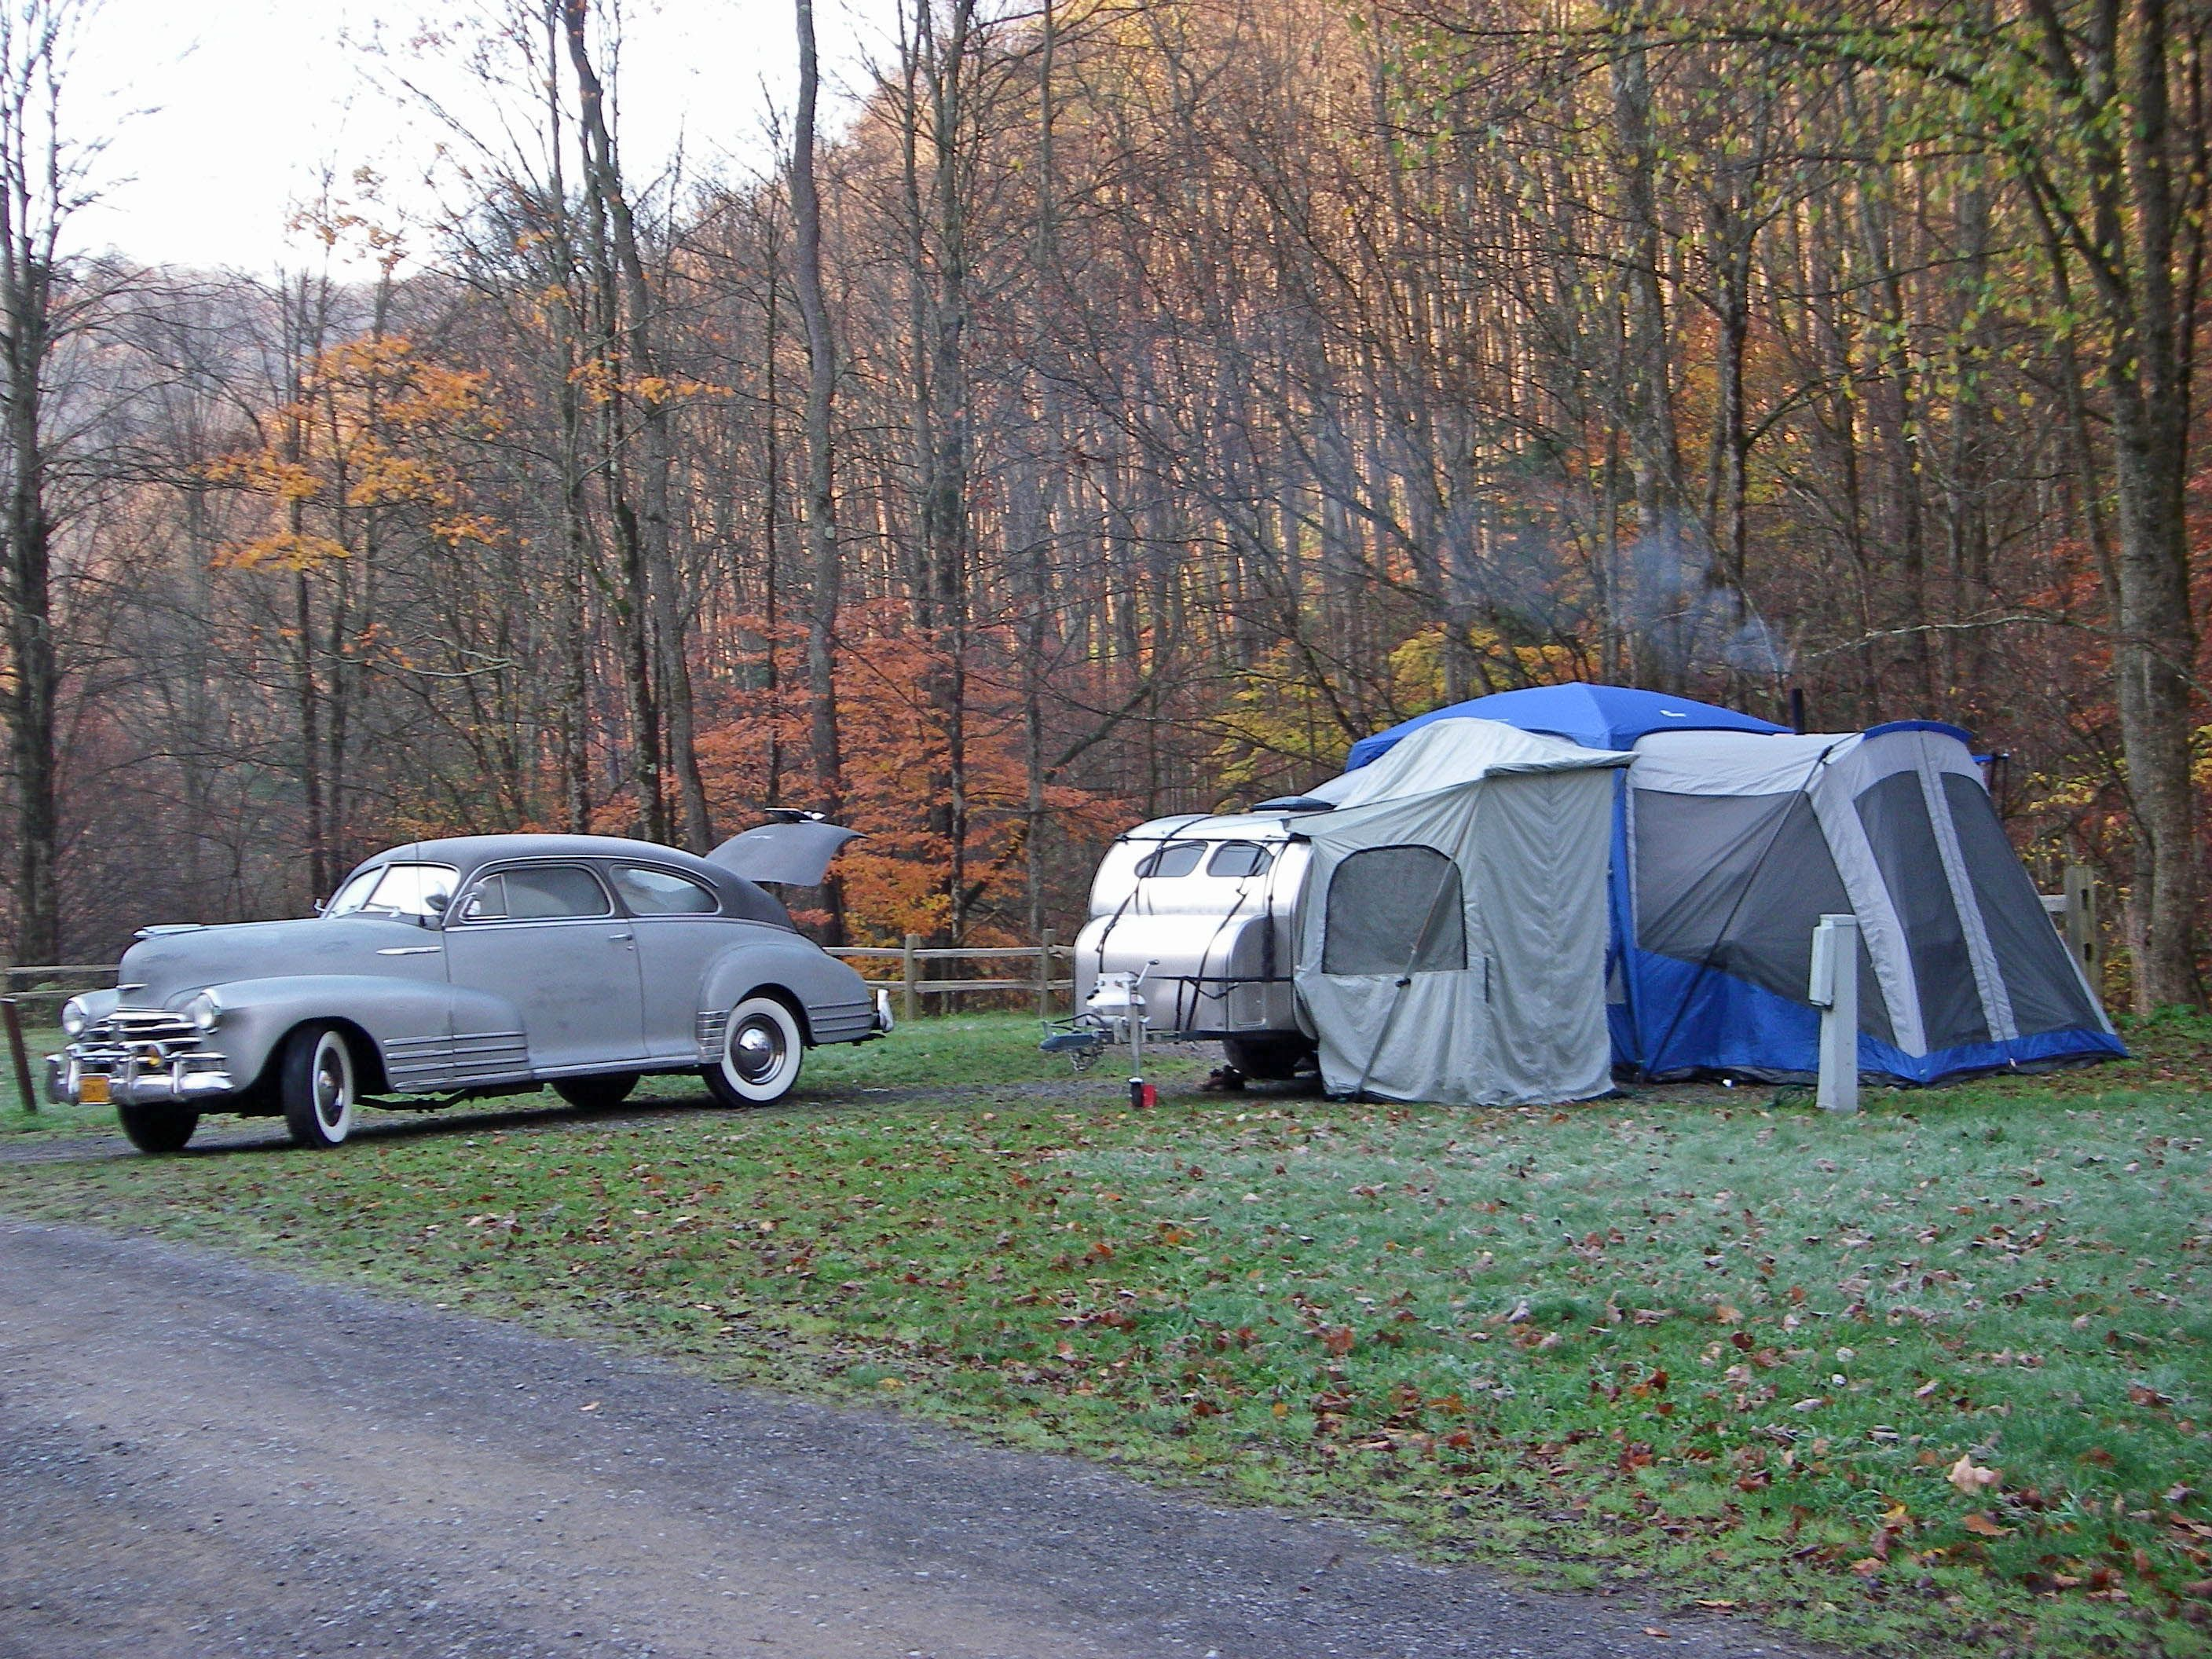 George Thompson at Lyman Run State Park in PA. hooked up the Sportz 84000 SUV tent to a tear drop trailer! & George Thompson at Lyman Run State Park in PA... hooked up the ...